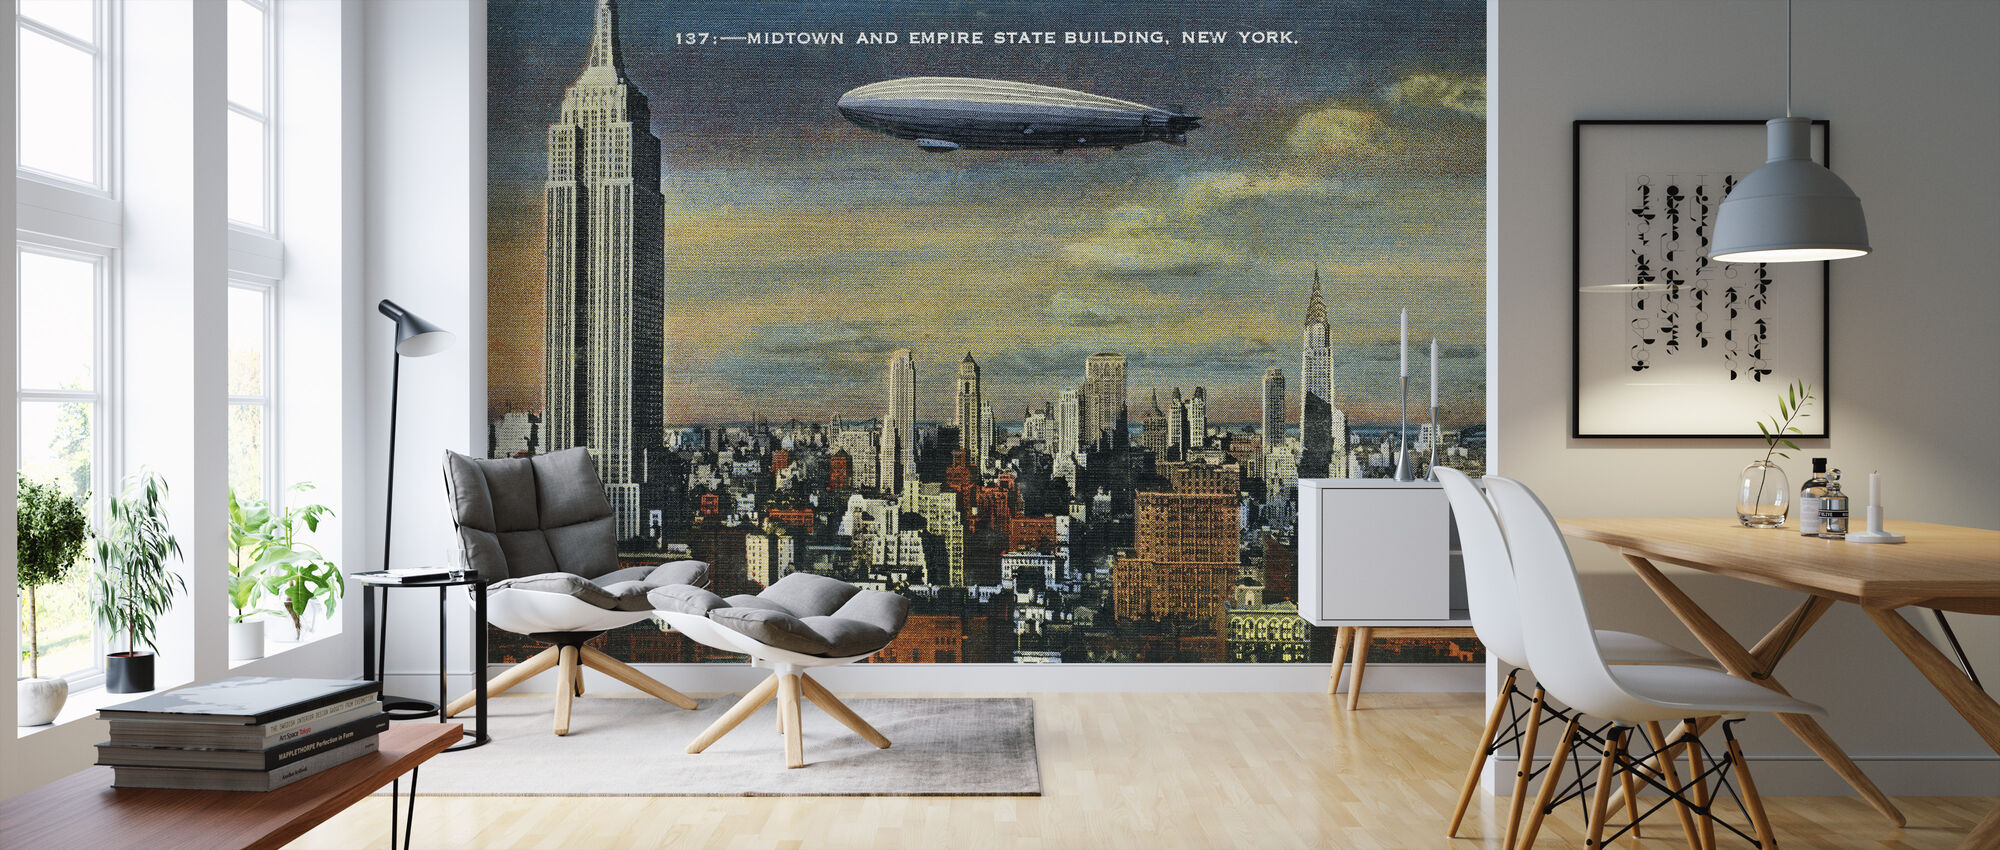 Midtown New York - Wallpaper - Living Room